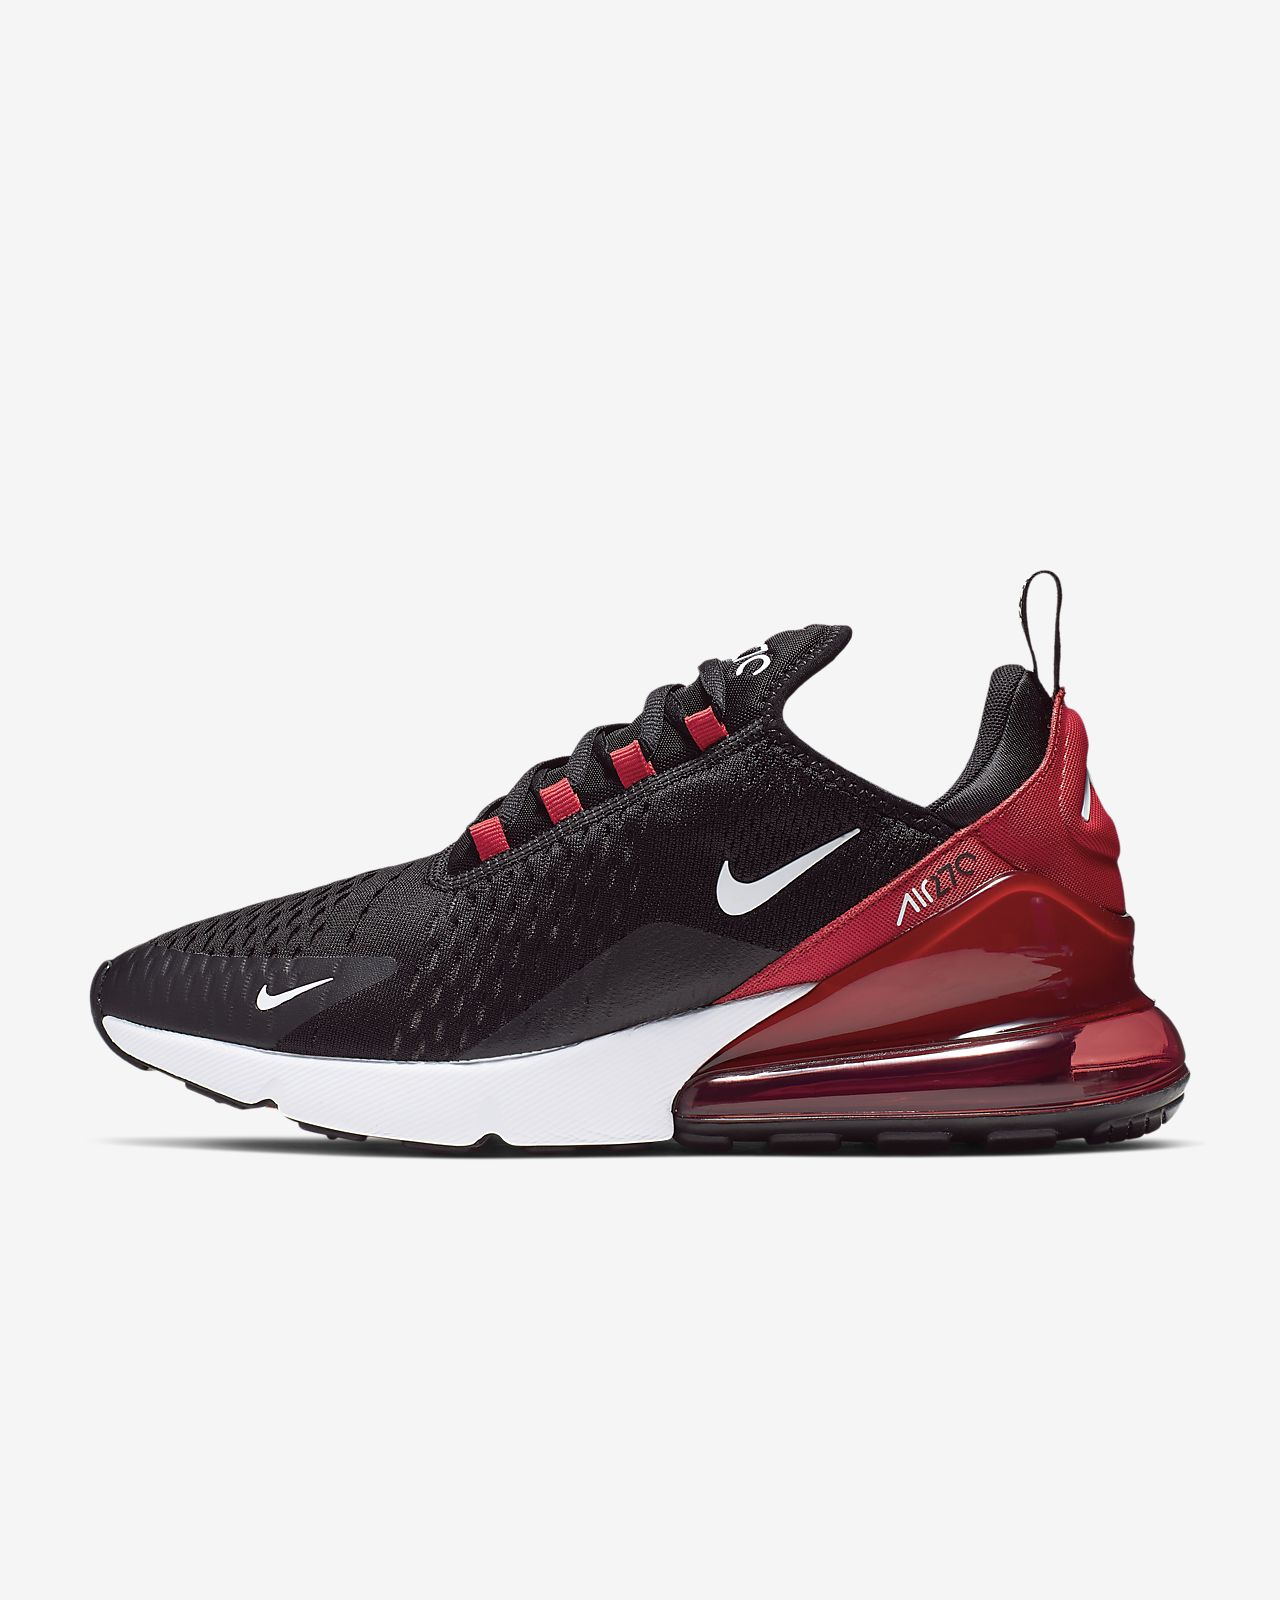 lowest price 53f1e ac51a ... Nike Air Max 270 Men s Shoe